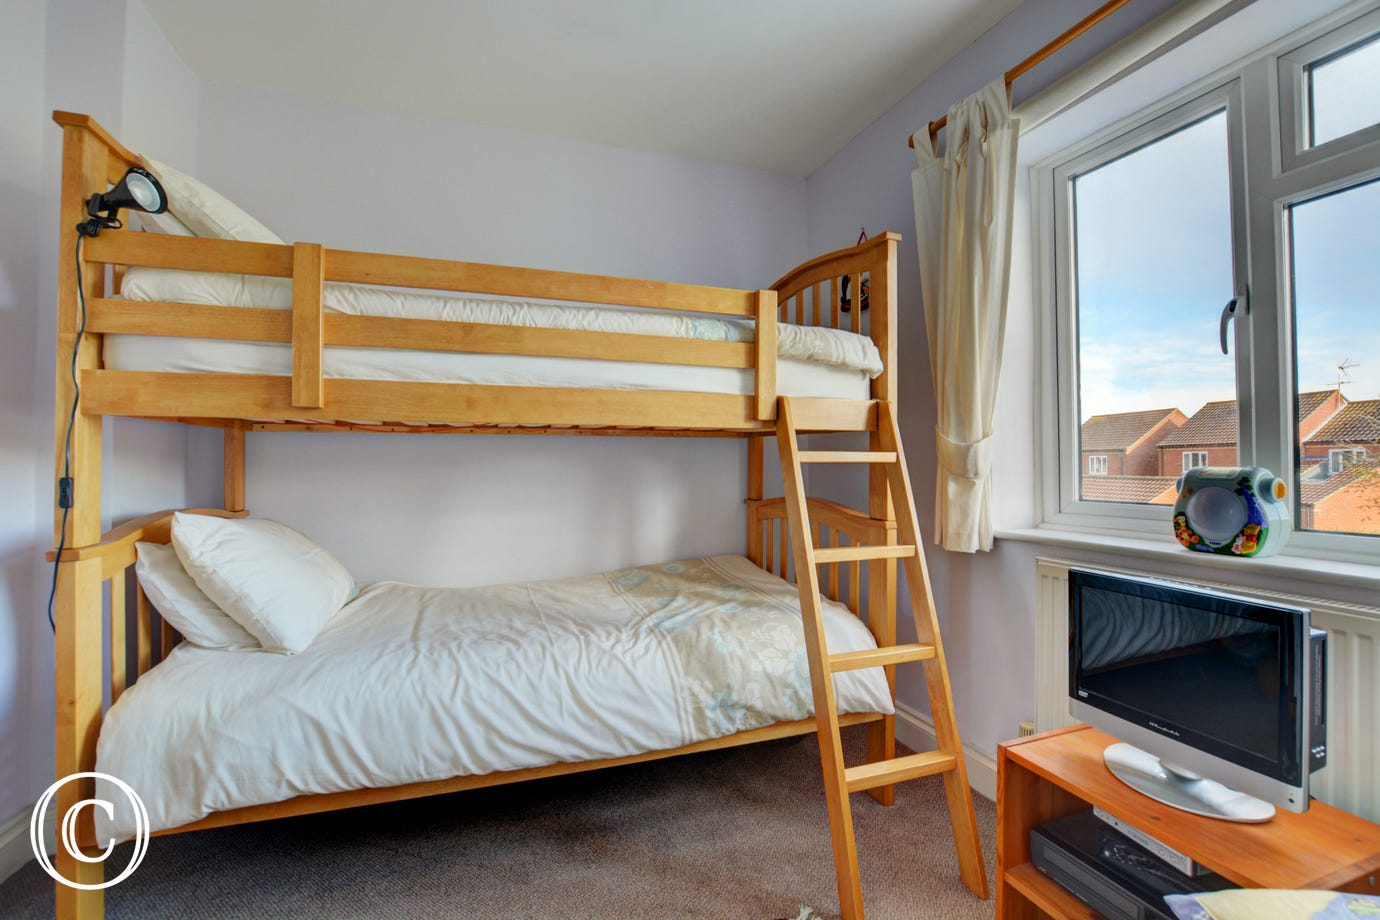 This bedroom has bunk beds, ideal for the children